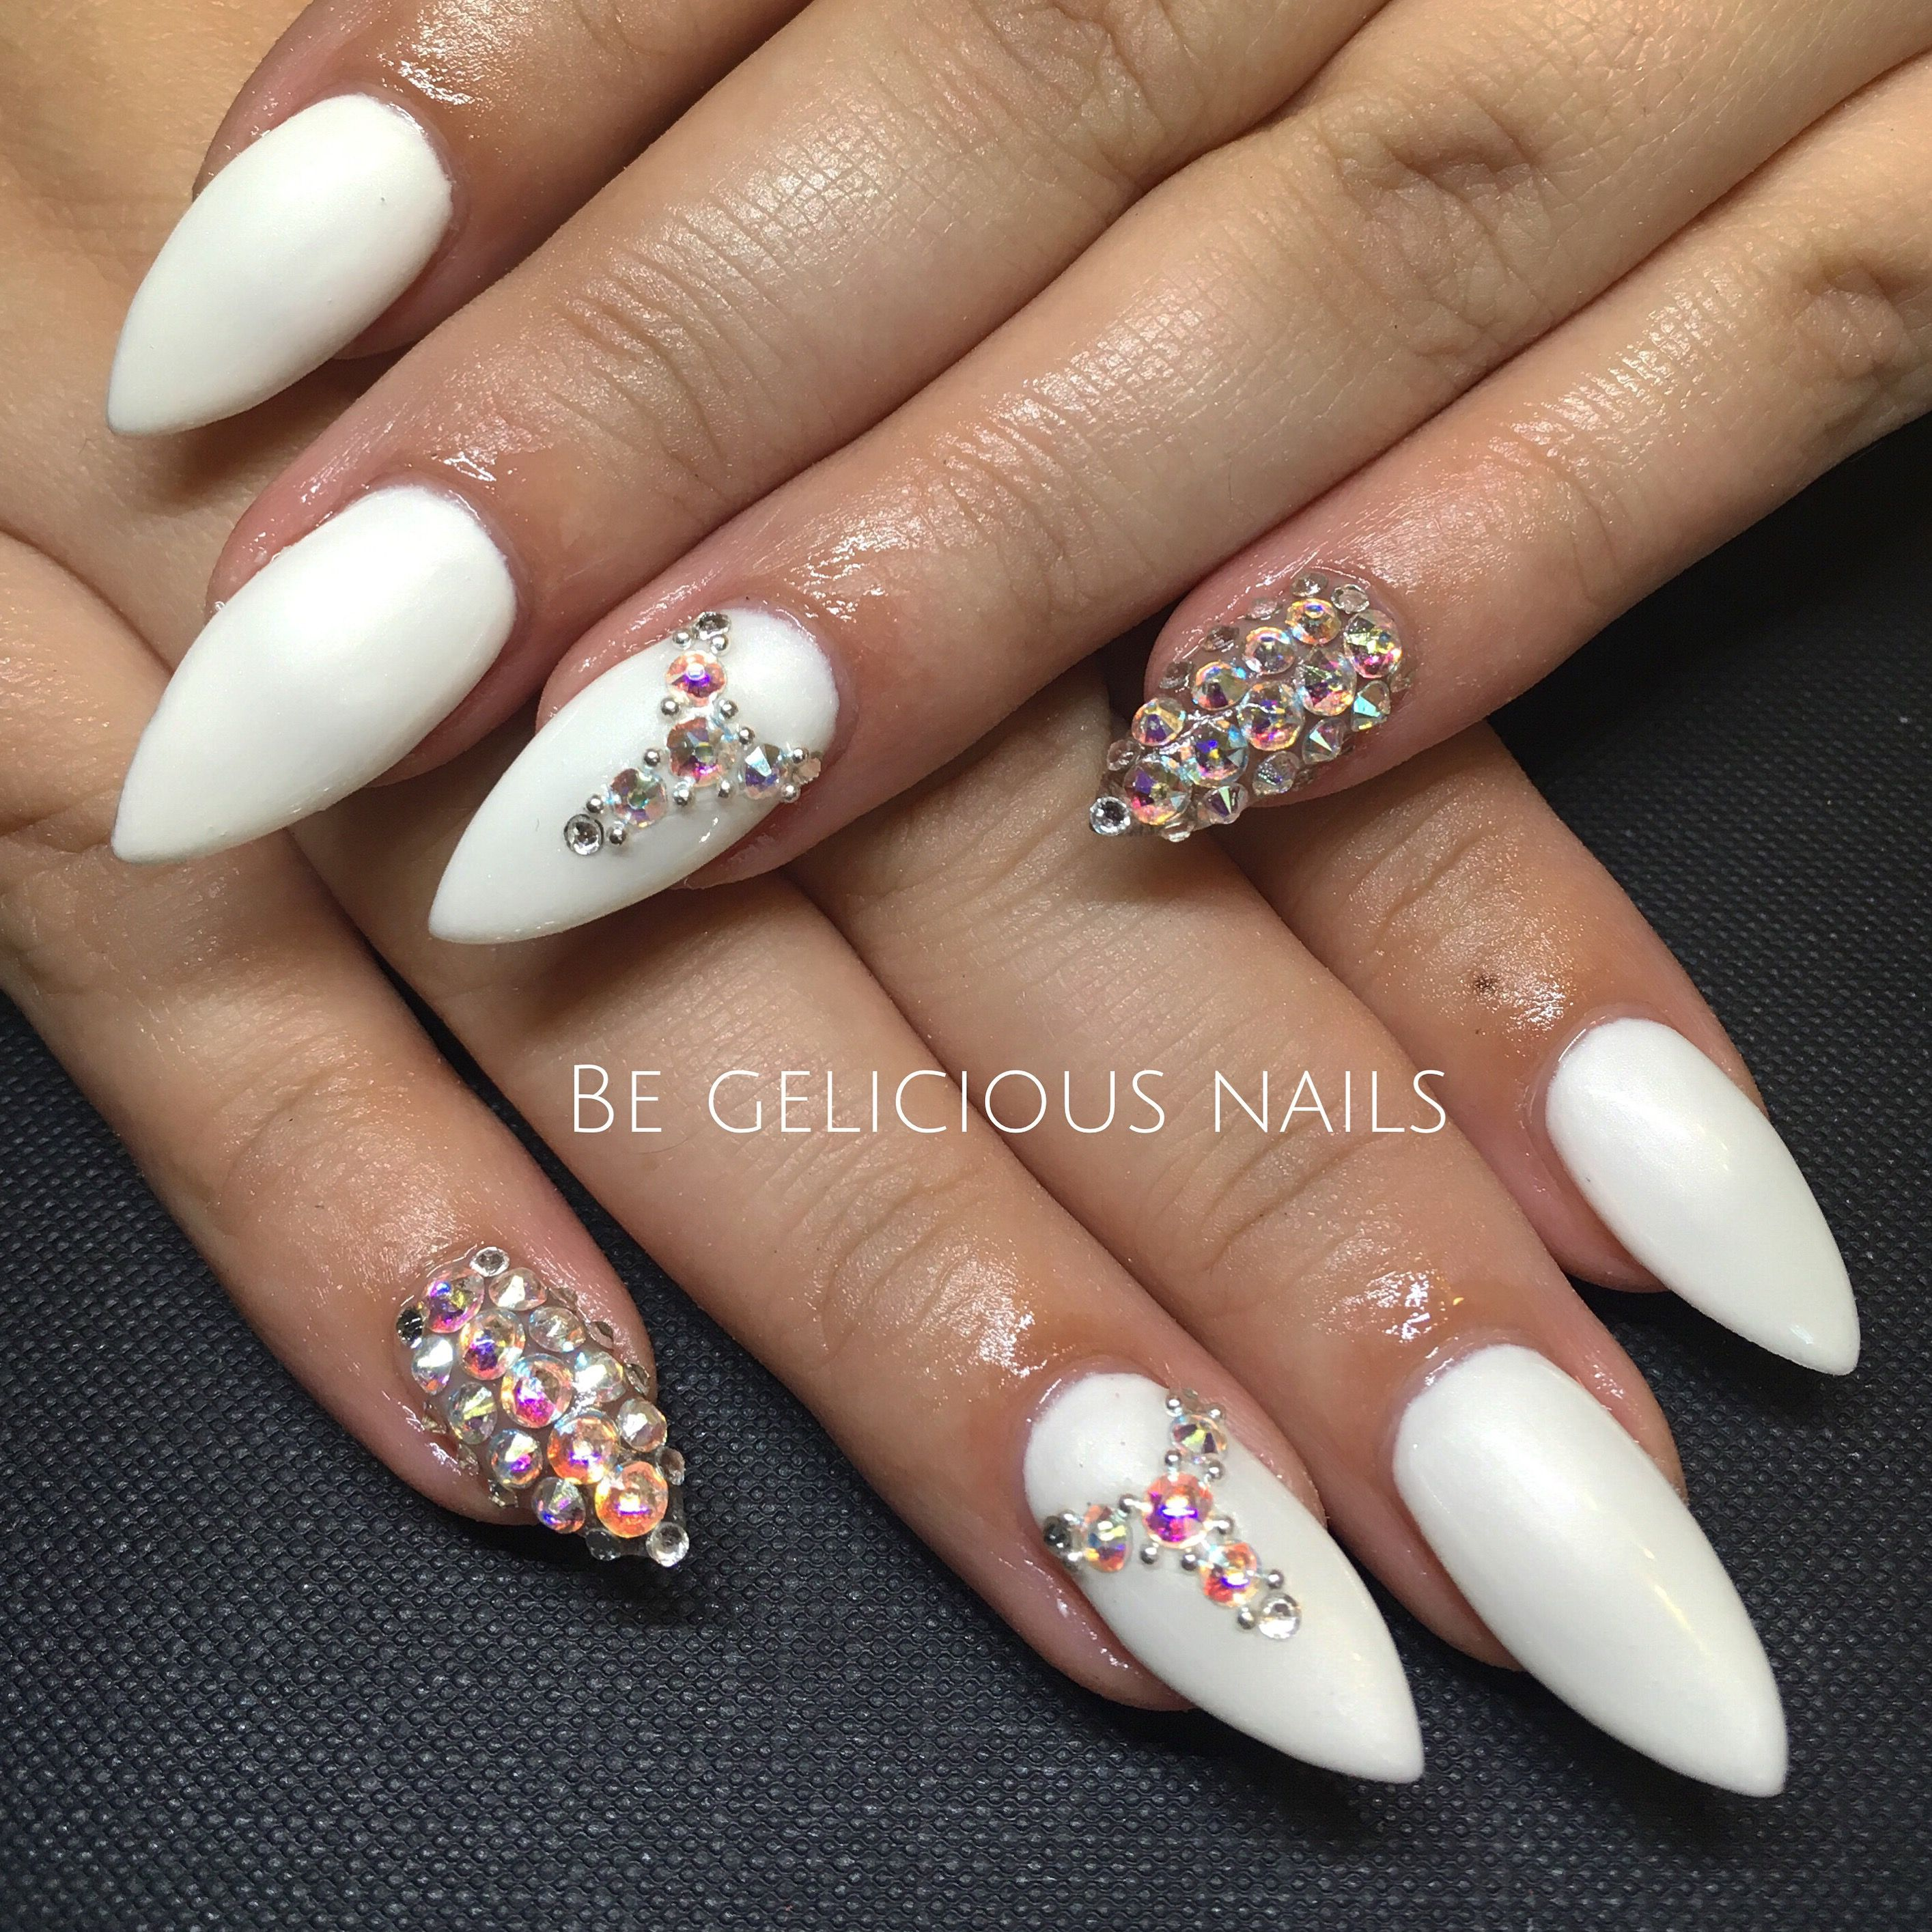 Calgel Nails, Gel, Nail Art, Nail Design, White, Swarovski